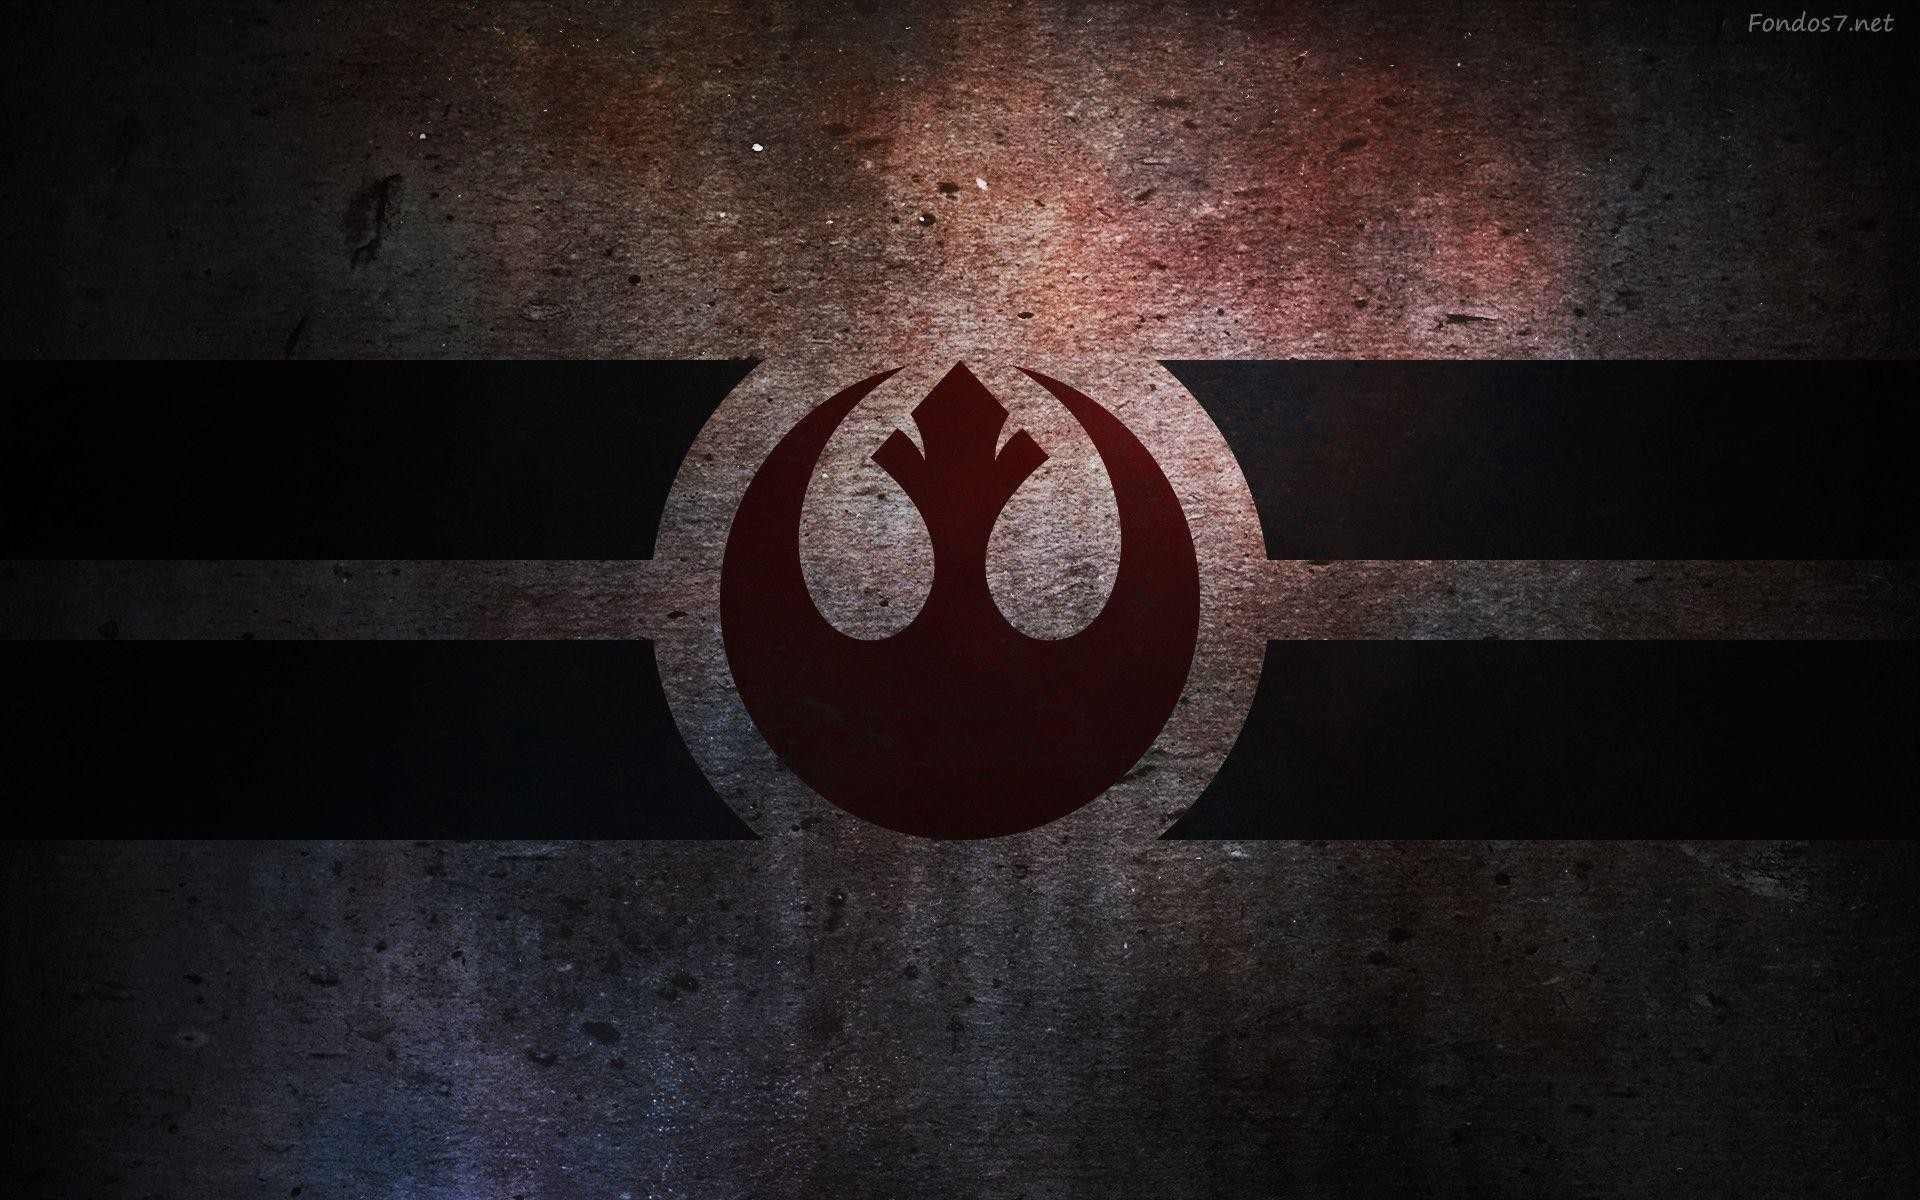 Jedi symbol wallpaper 72 images 1920x1200 woman of the jedi order images women of the new jedi order hd biocorpaavc